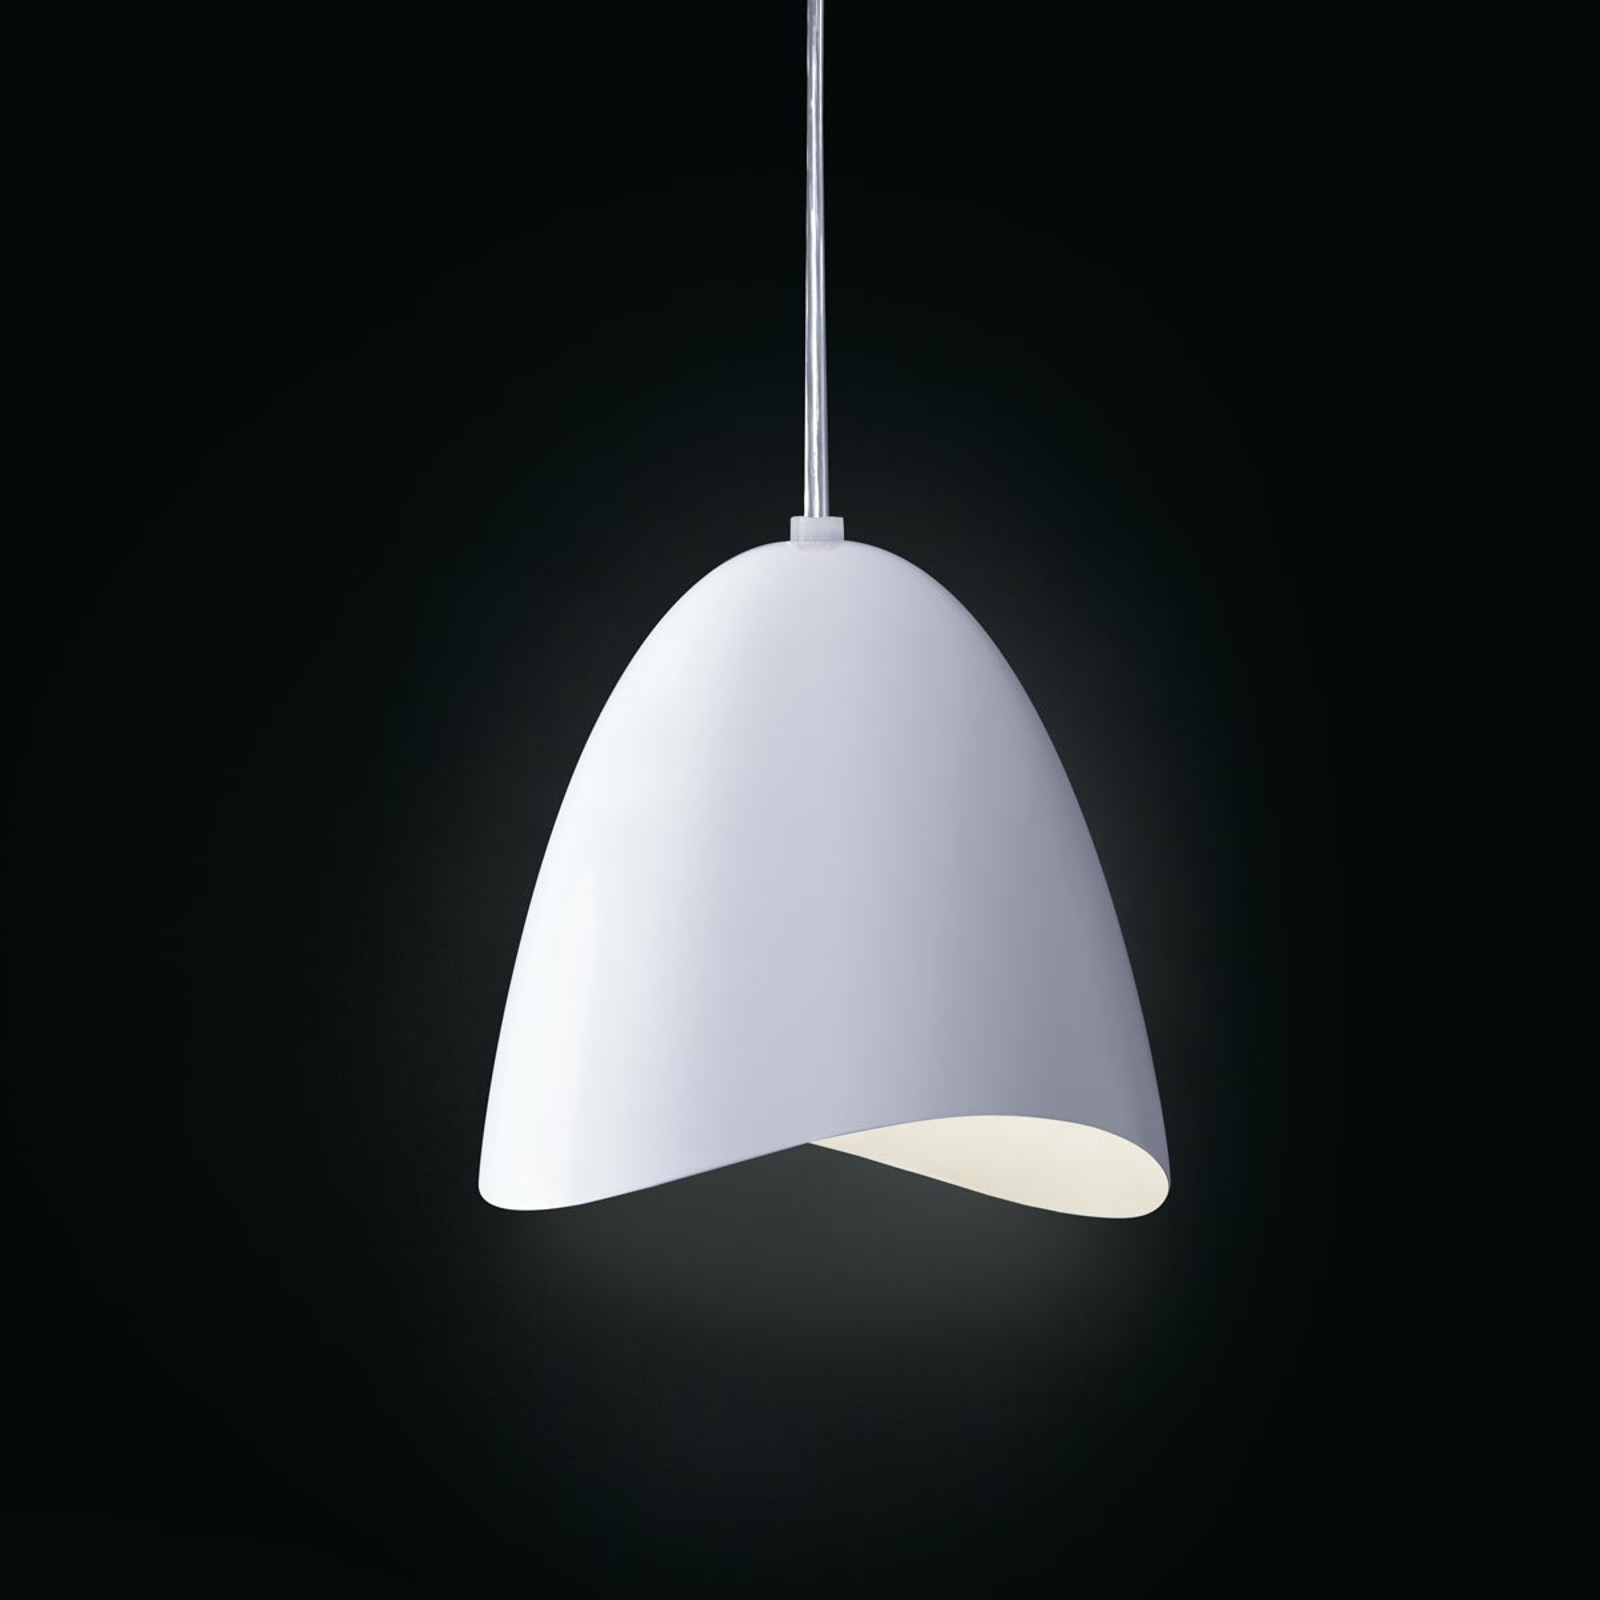 Glanzend witte LED hanglamp Mirage